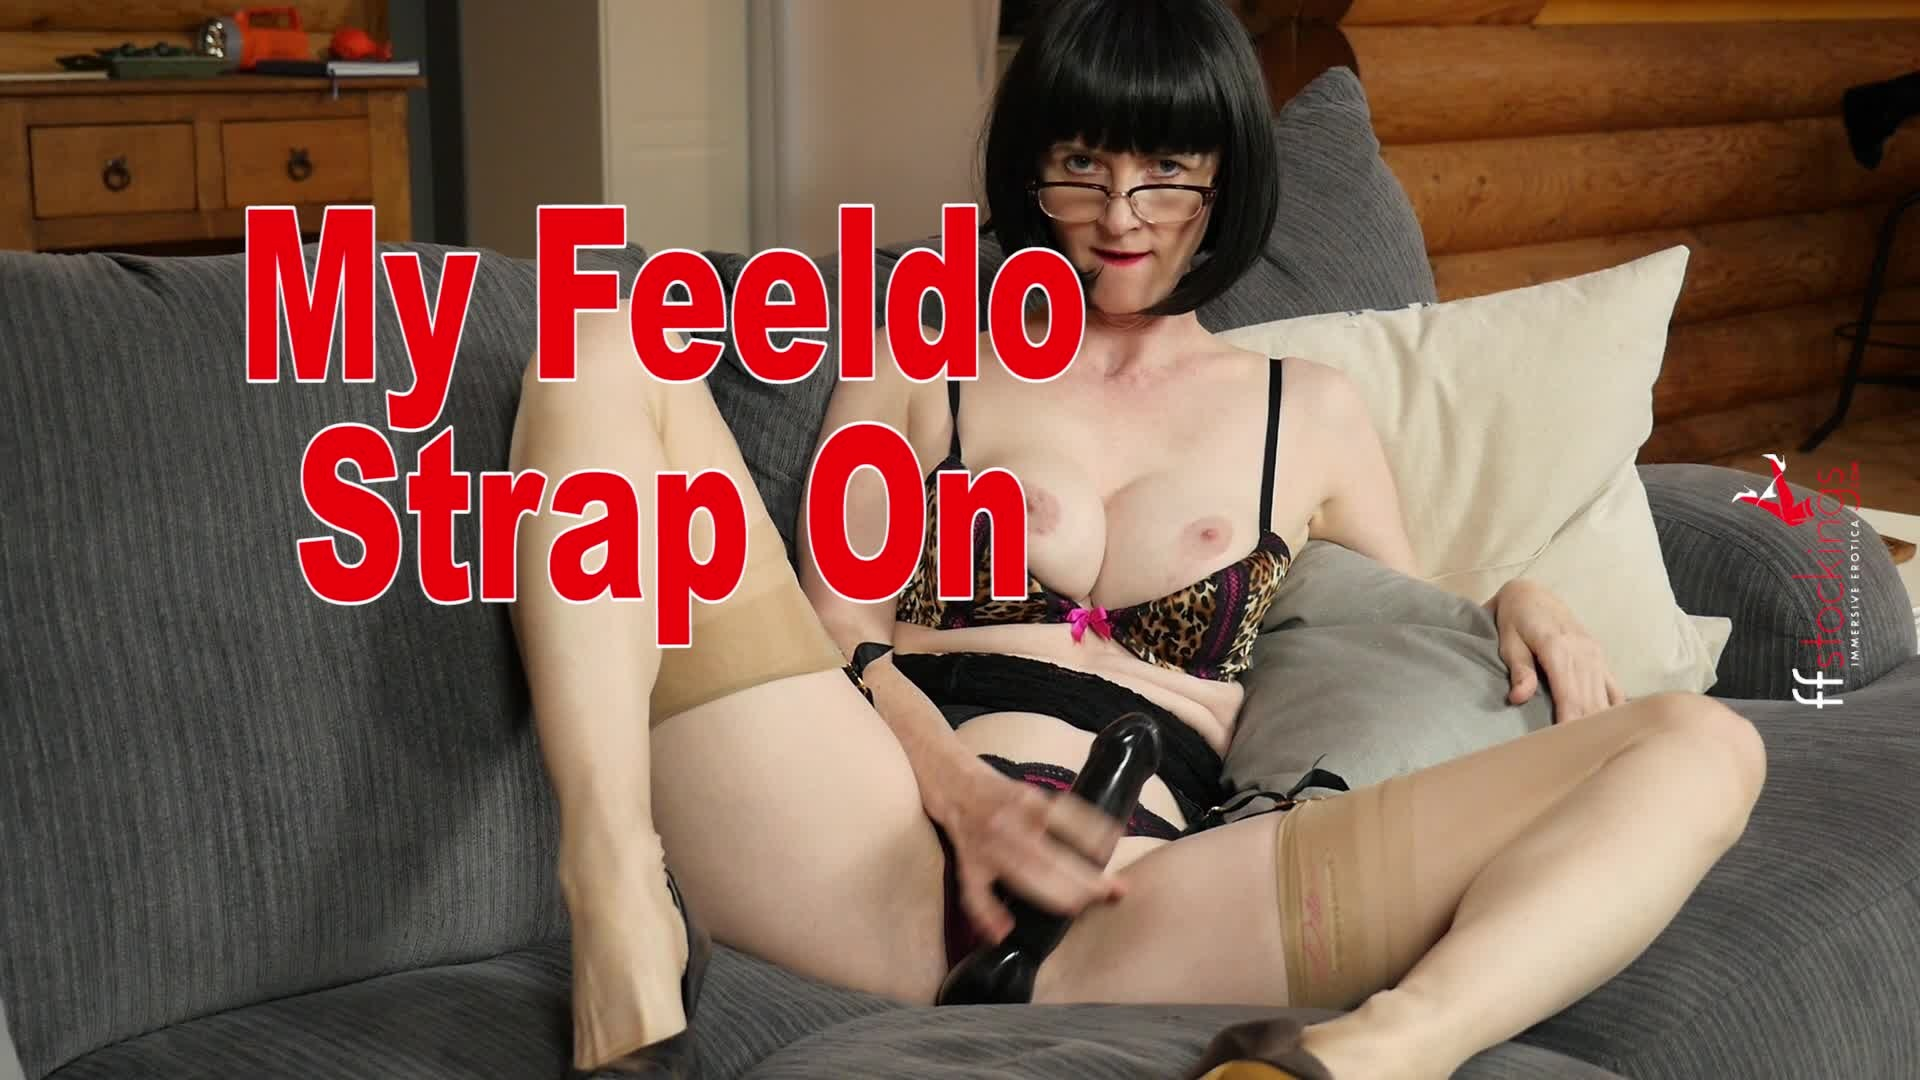 I Love to Get Fucked By My Feeldoe Strap On Dildo